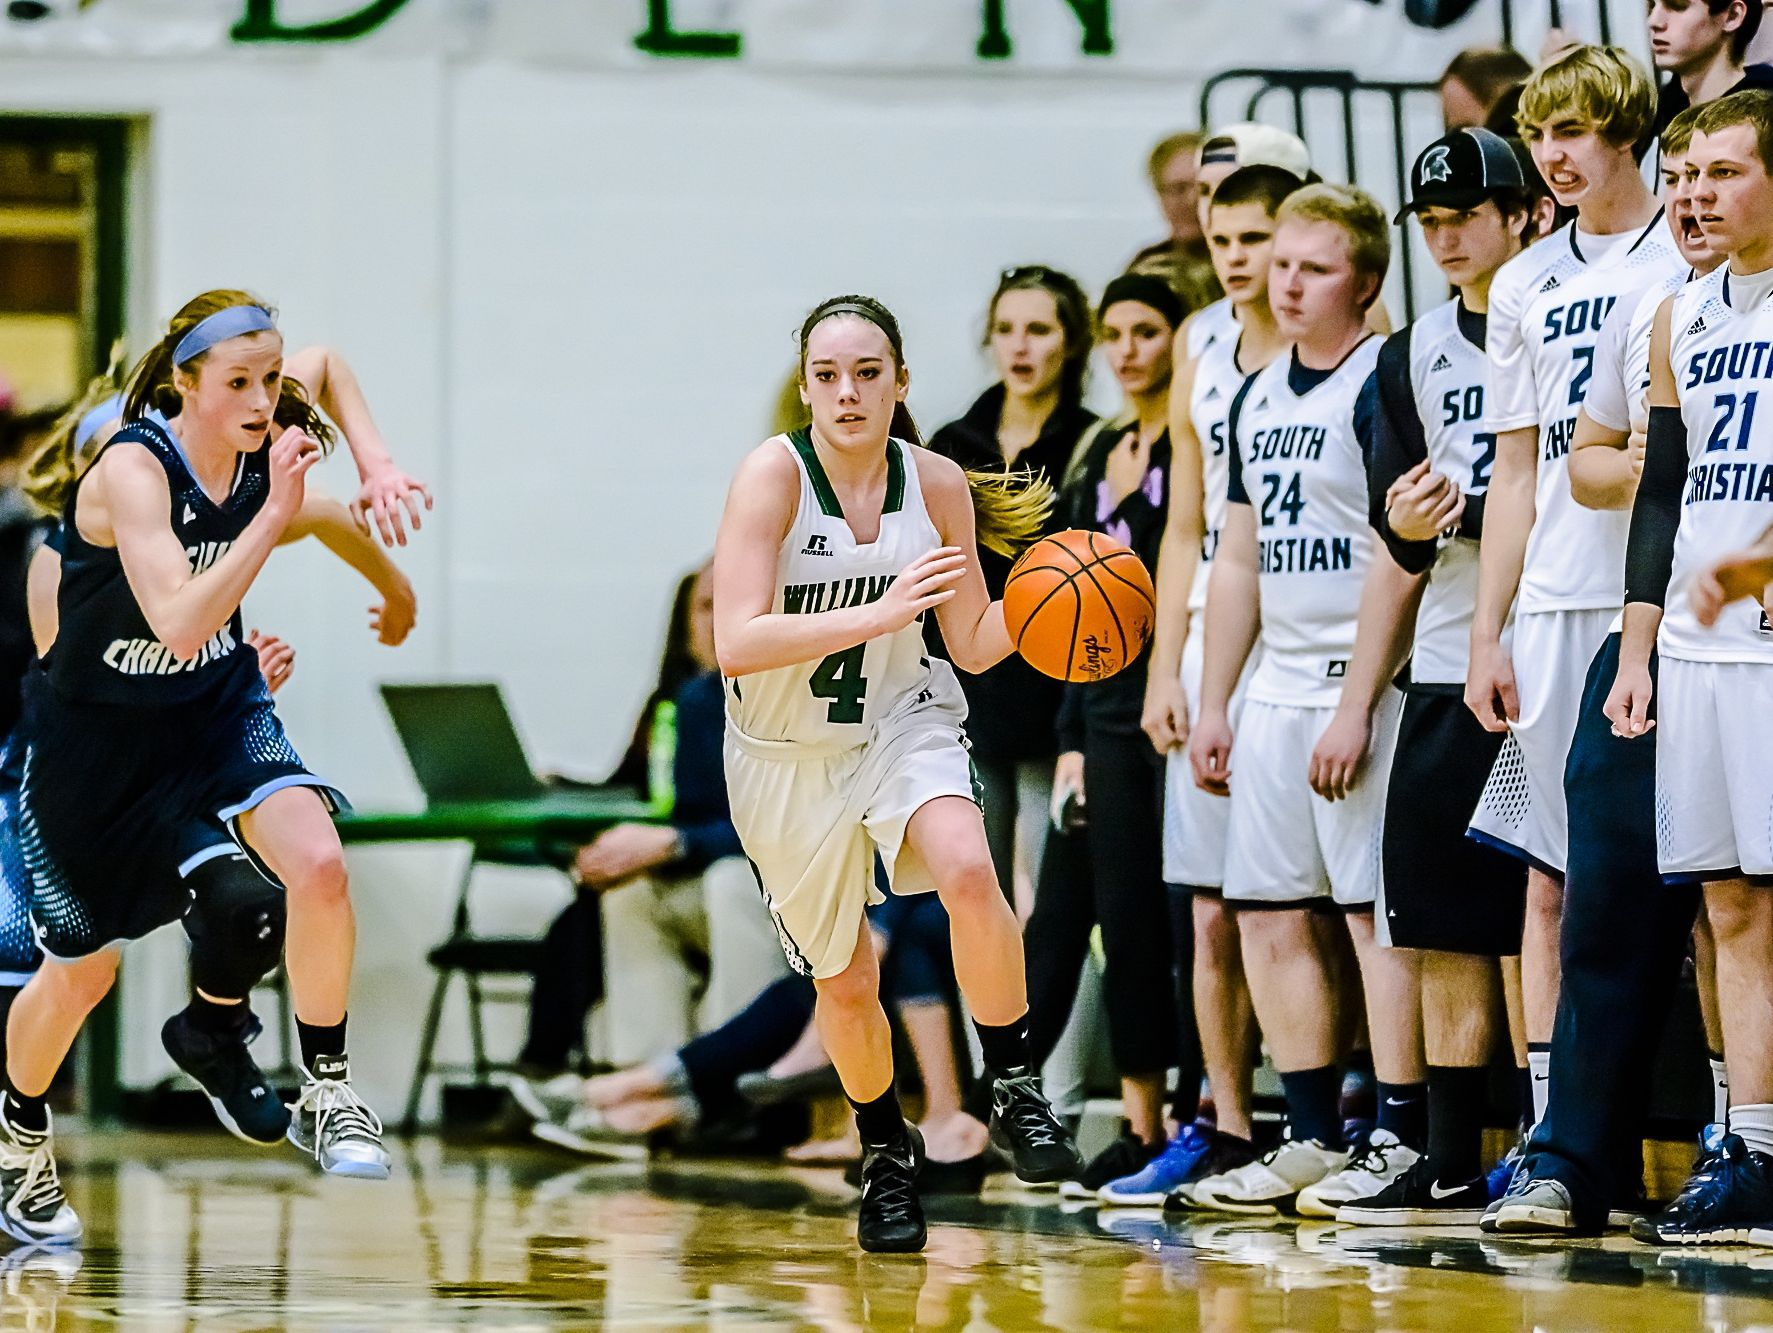 Maddie Waters, 4, of Williamston pushes the ball up the sideline after a Grand Rapids South Christian turnover during their Class B regional semifinal game last season. Watters, a three-year varsity starter, has helped the Hornets get out to an 8-1 record in the 2016-17 season.